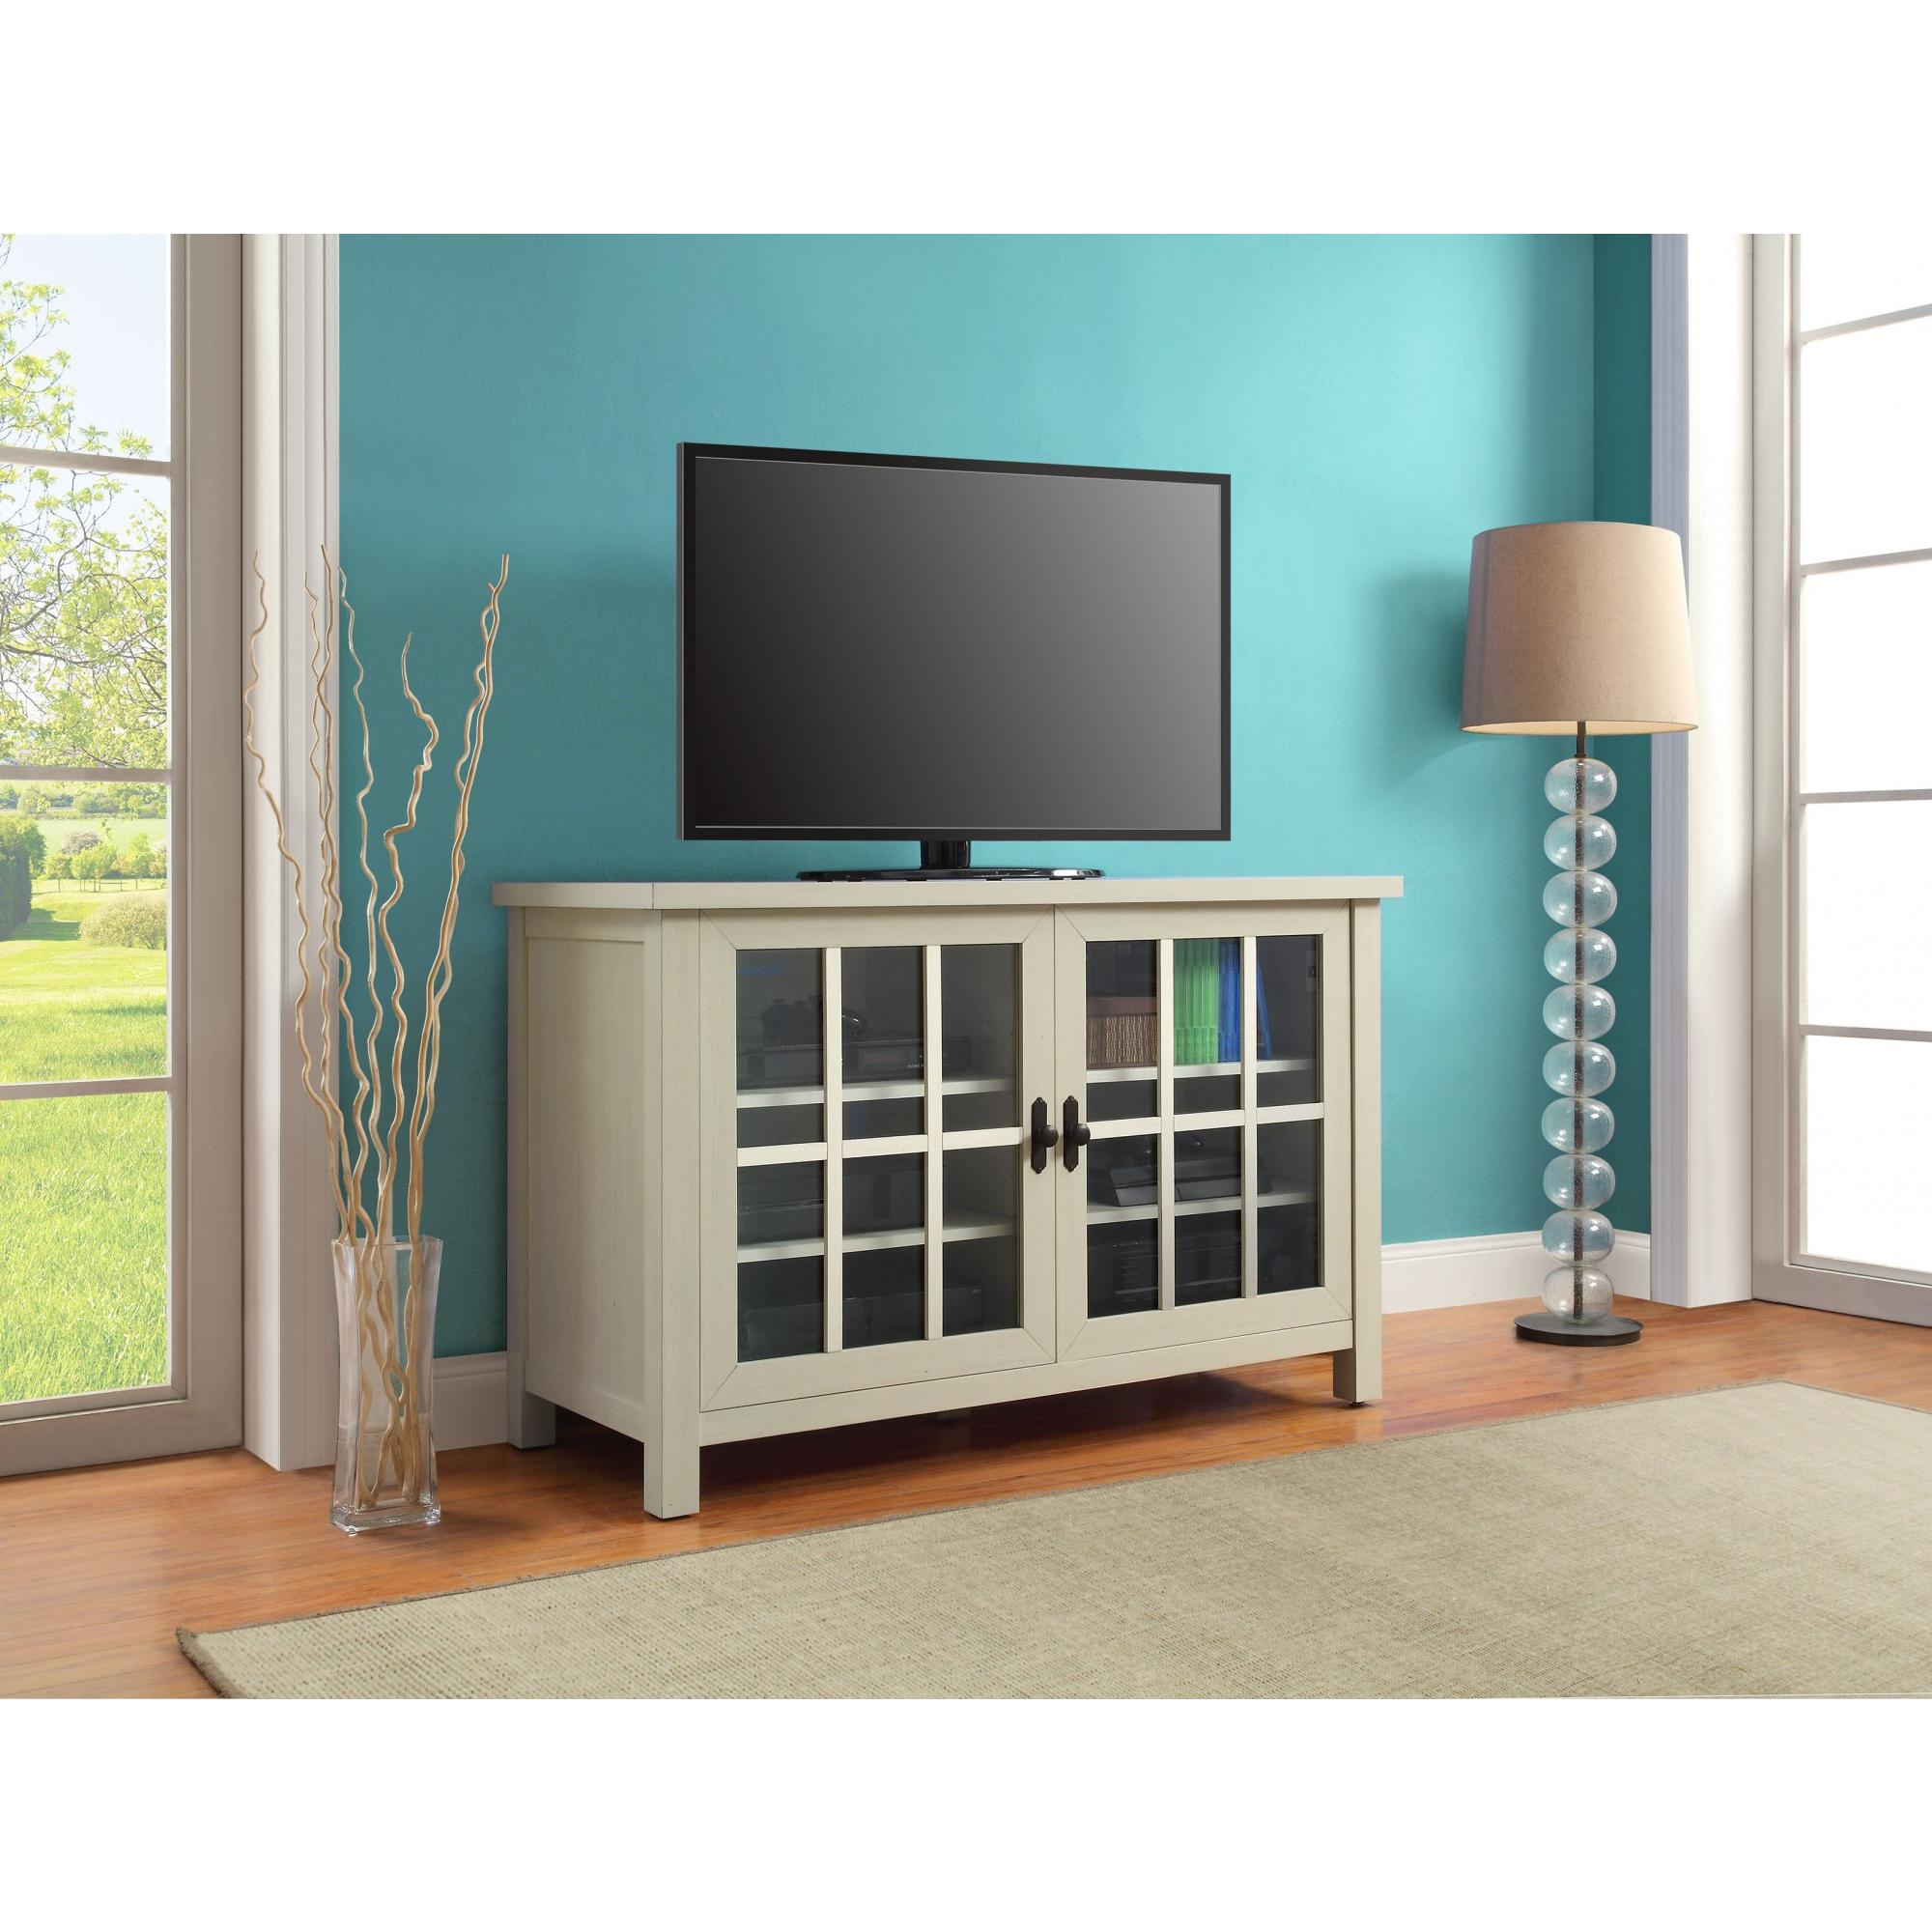 Better Homes and Gardens Oxford Square TV Stand and Console for